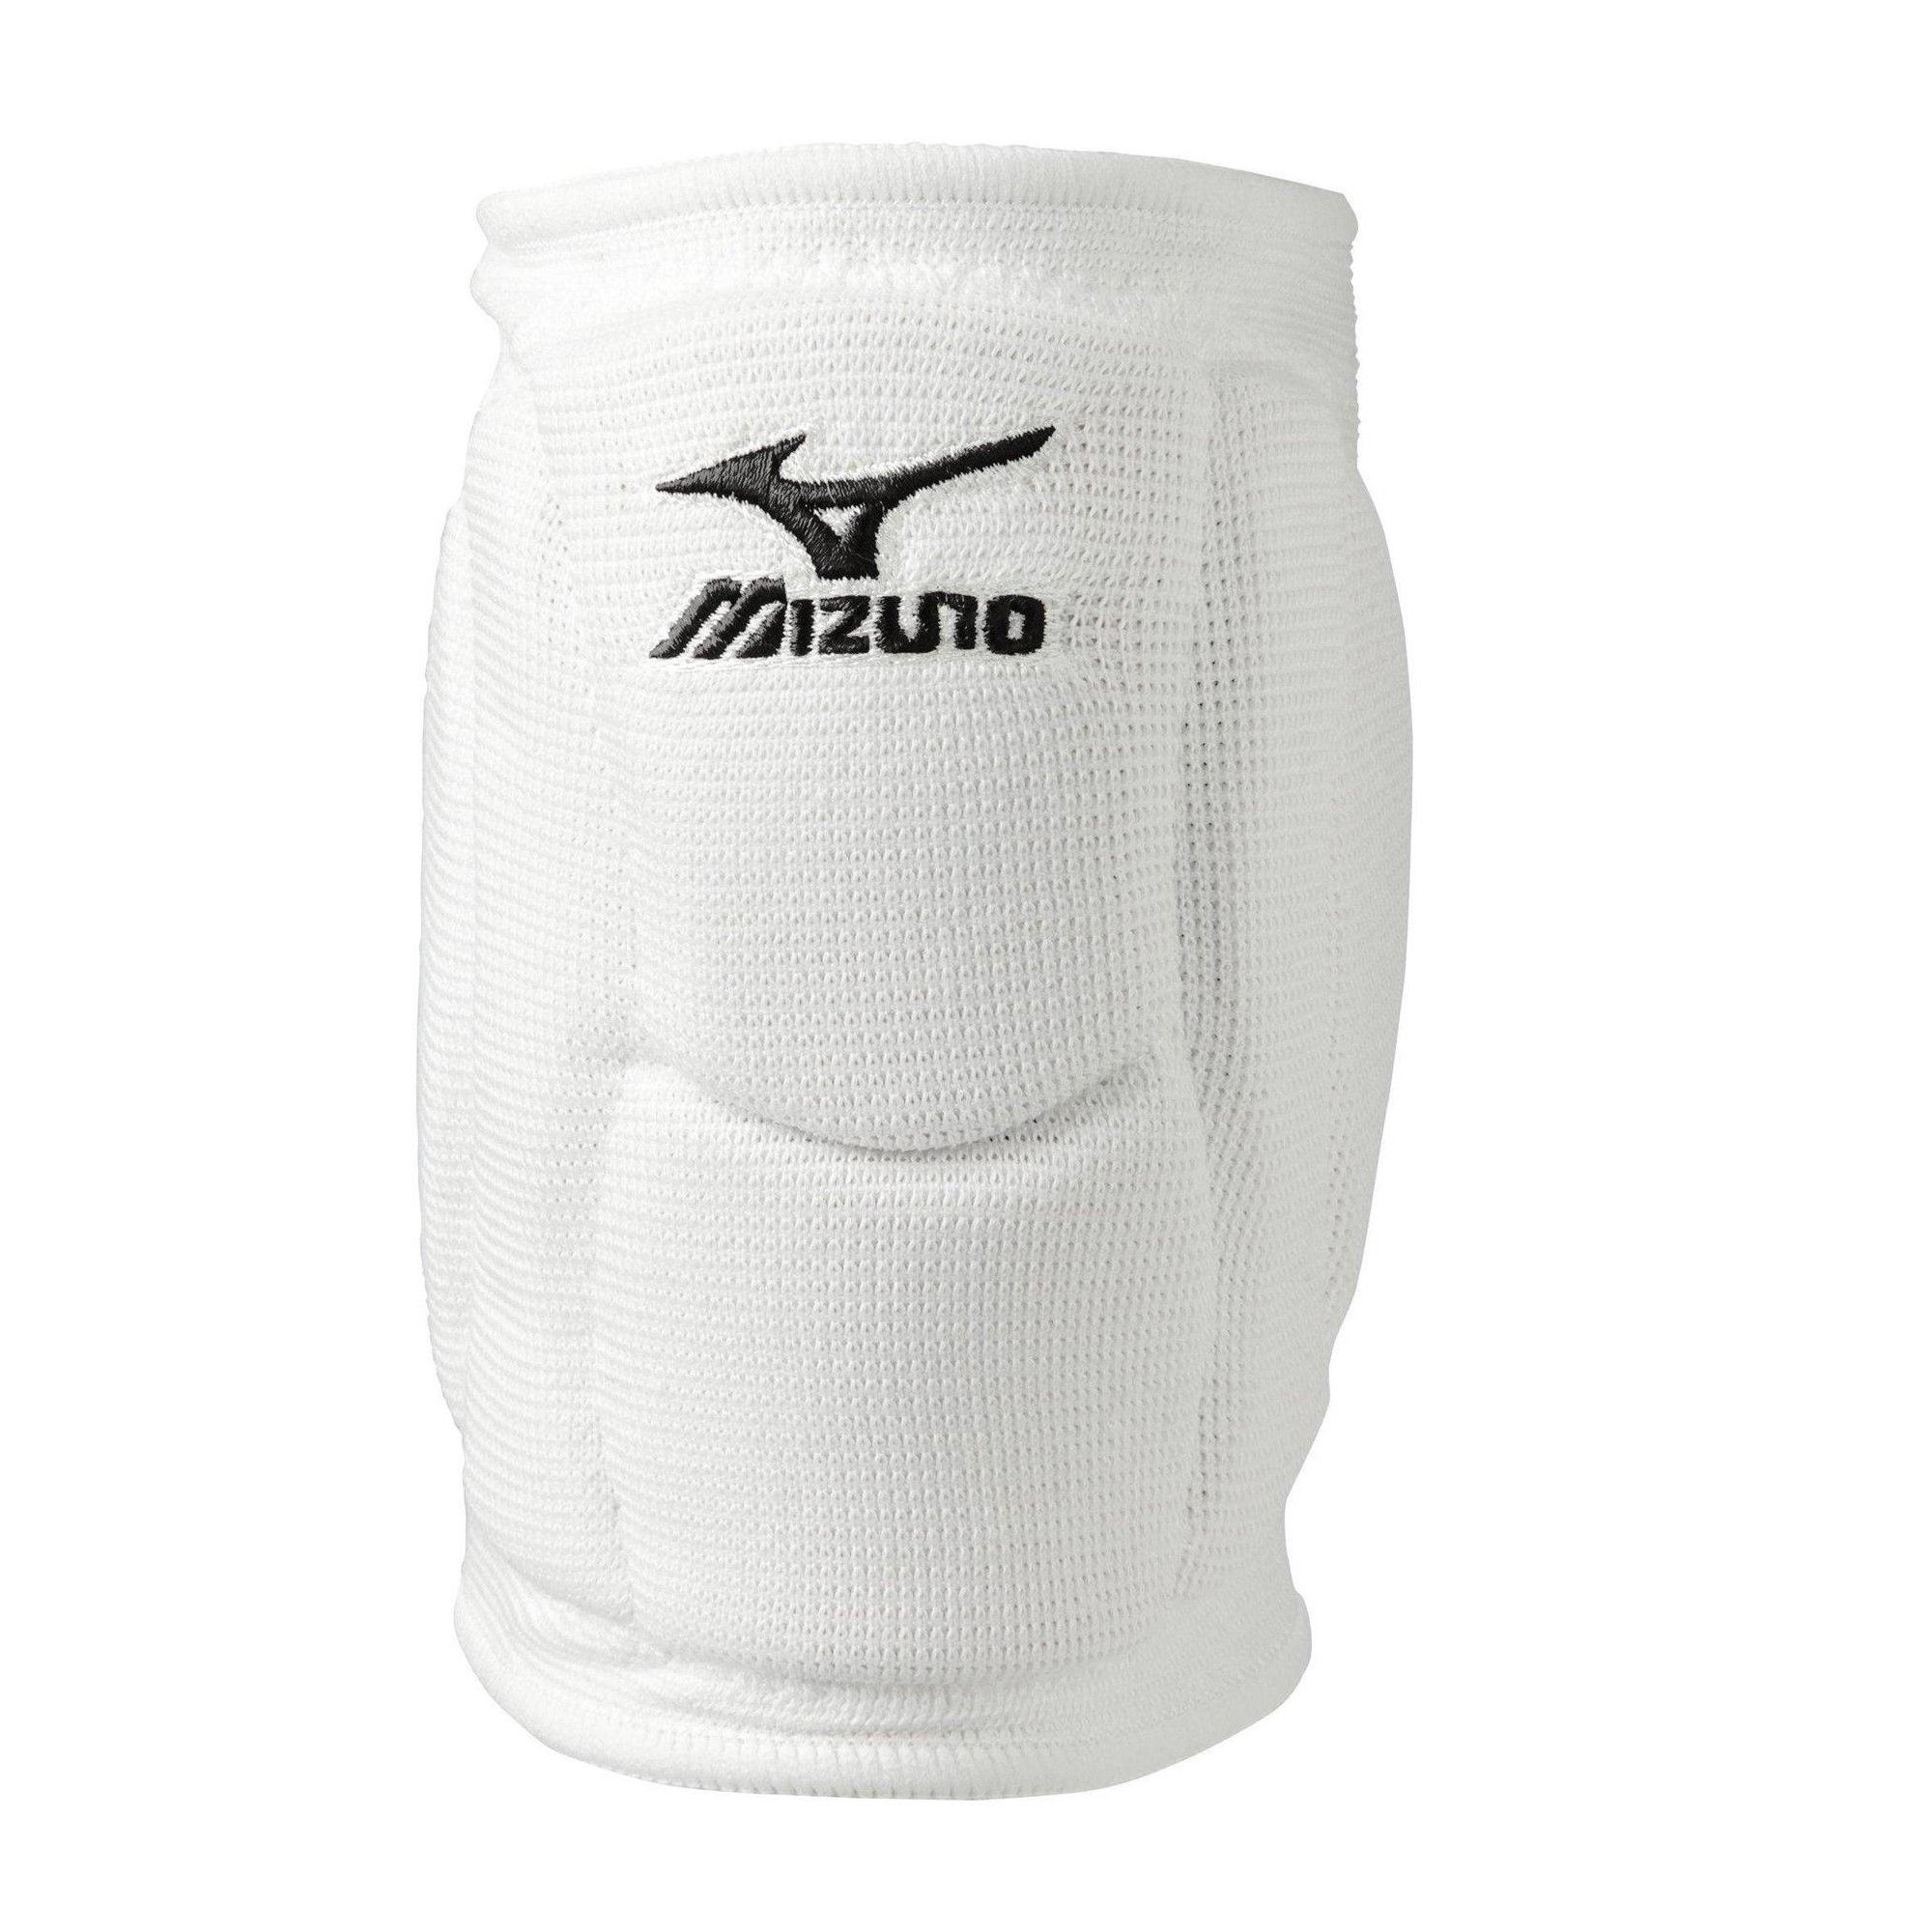 Mizuno Volleyball Accessories Elite 9 Sl2 Volleyball Knee Pads 480175 Size Medium White 0000 Volleyball Knee Pads Knee Pads